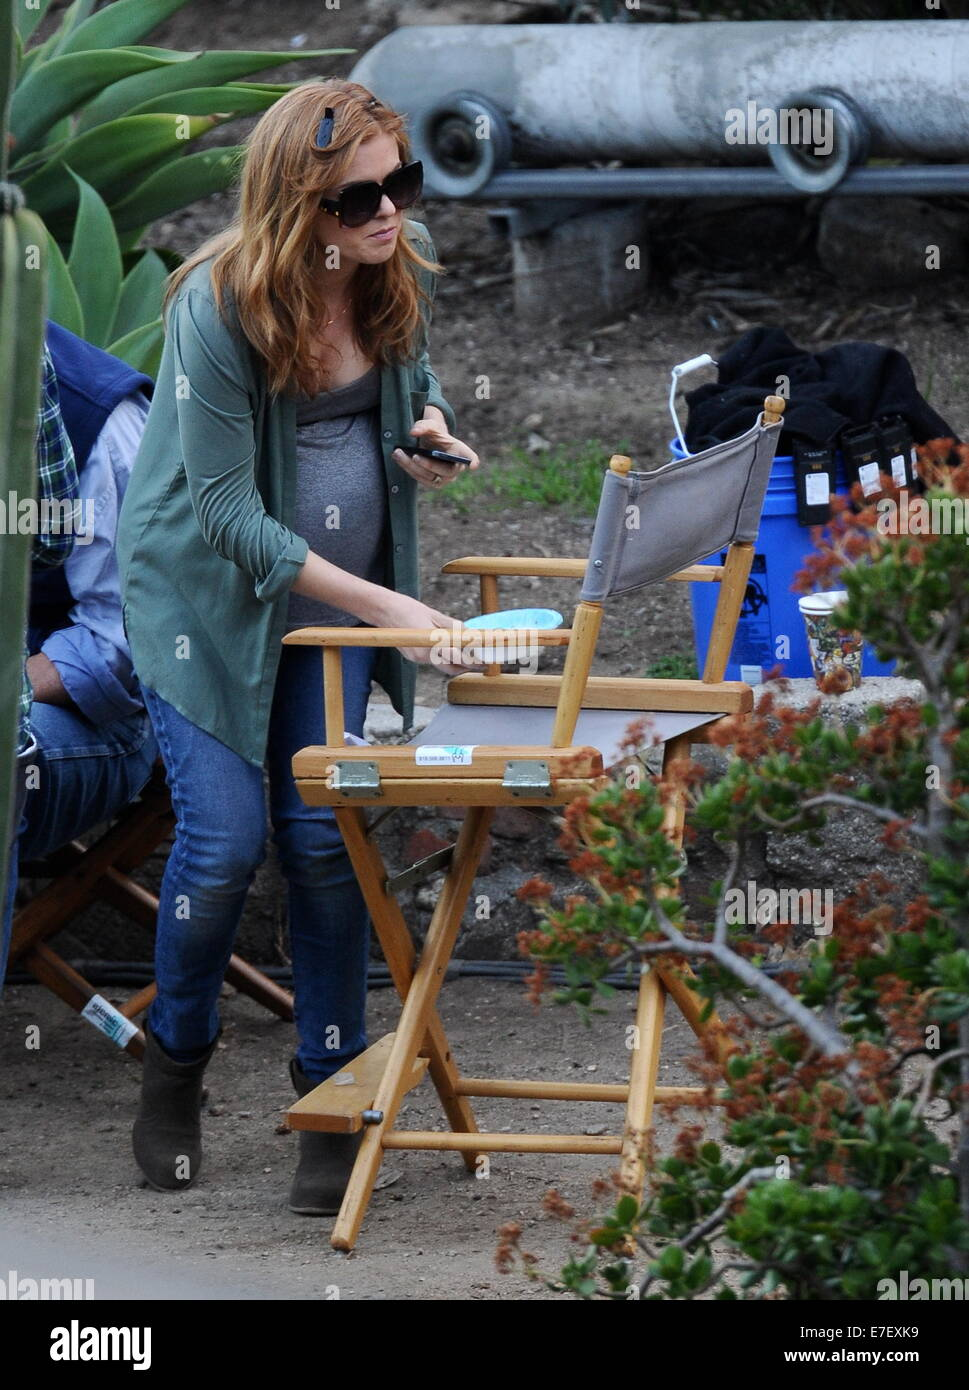 Isla Fisher shows off her huge pregnant belly bump while on the set of her new movie 'Visions' filming in - Stock Image